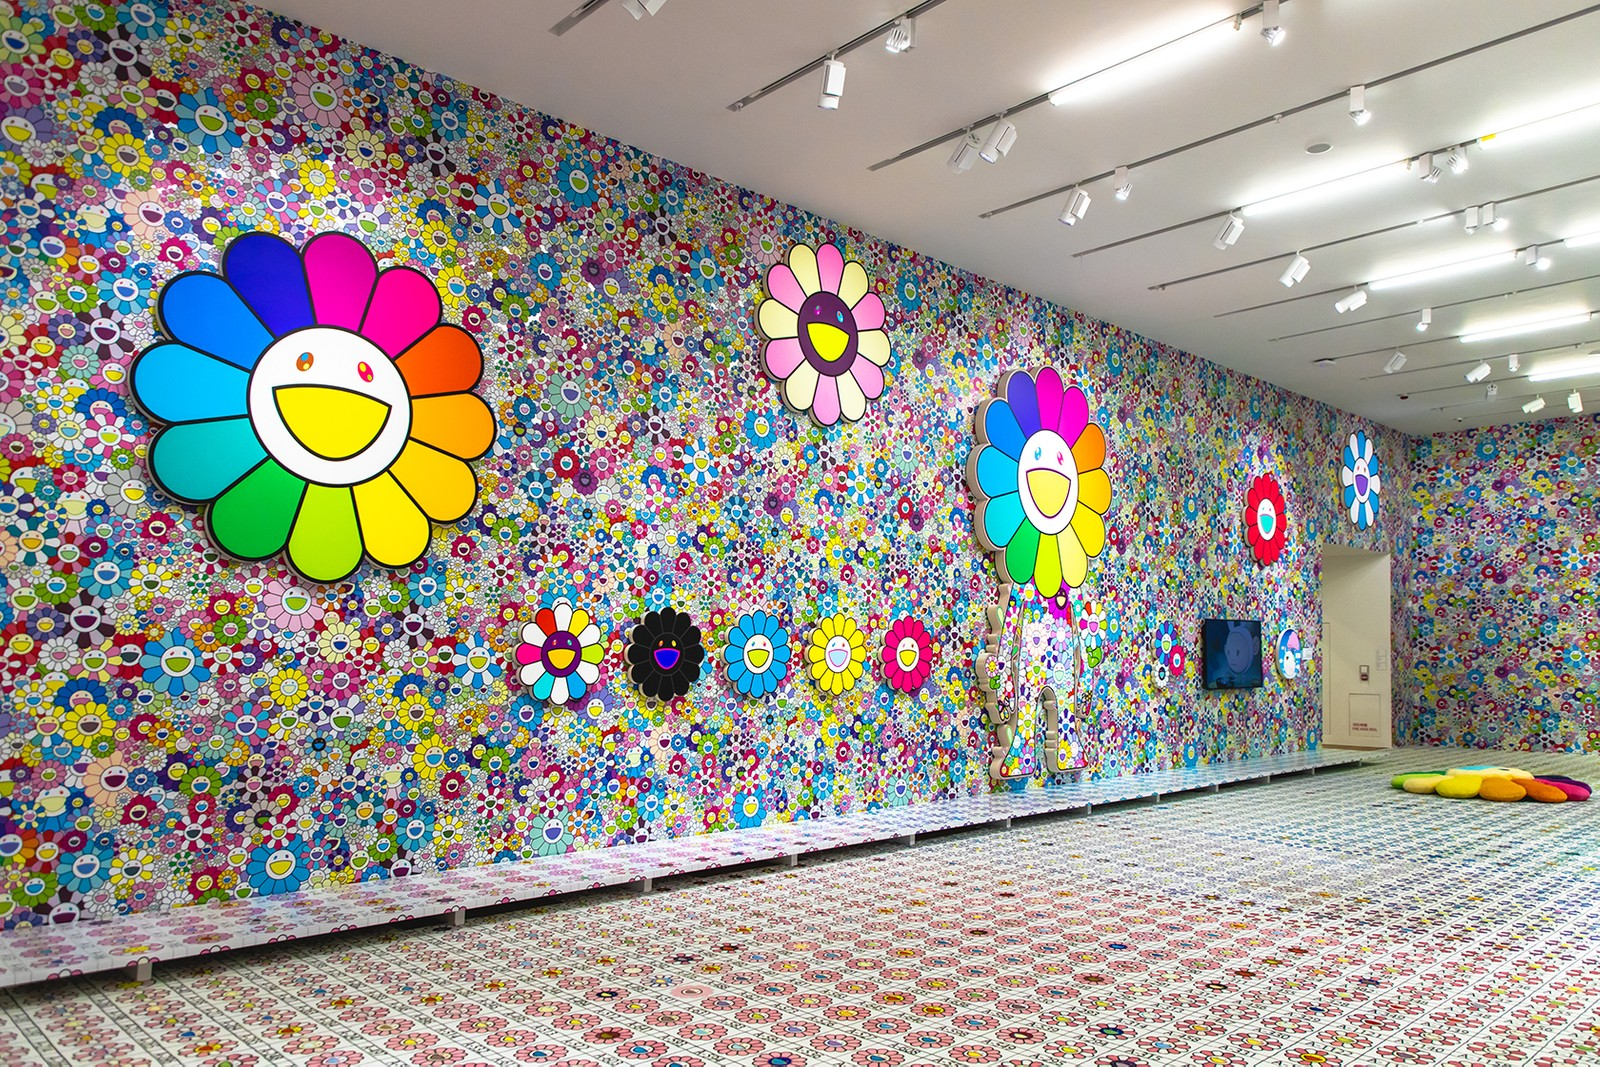 takashi murakami exhibit hong kong flower skull tai kwun gallery collection costume gold doramon asia pop-up shop plushie notebook sticker